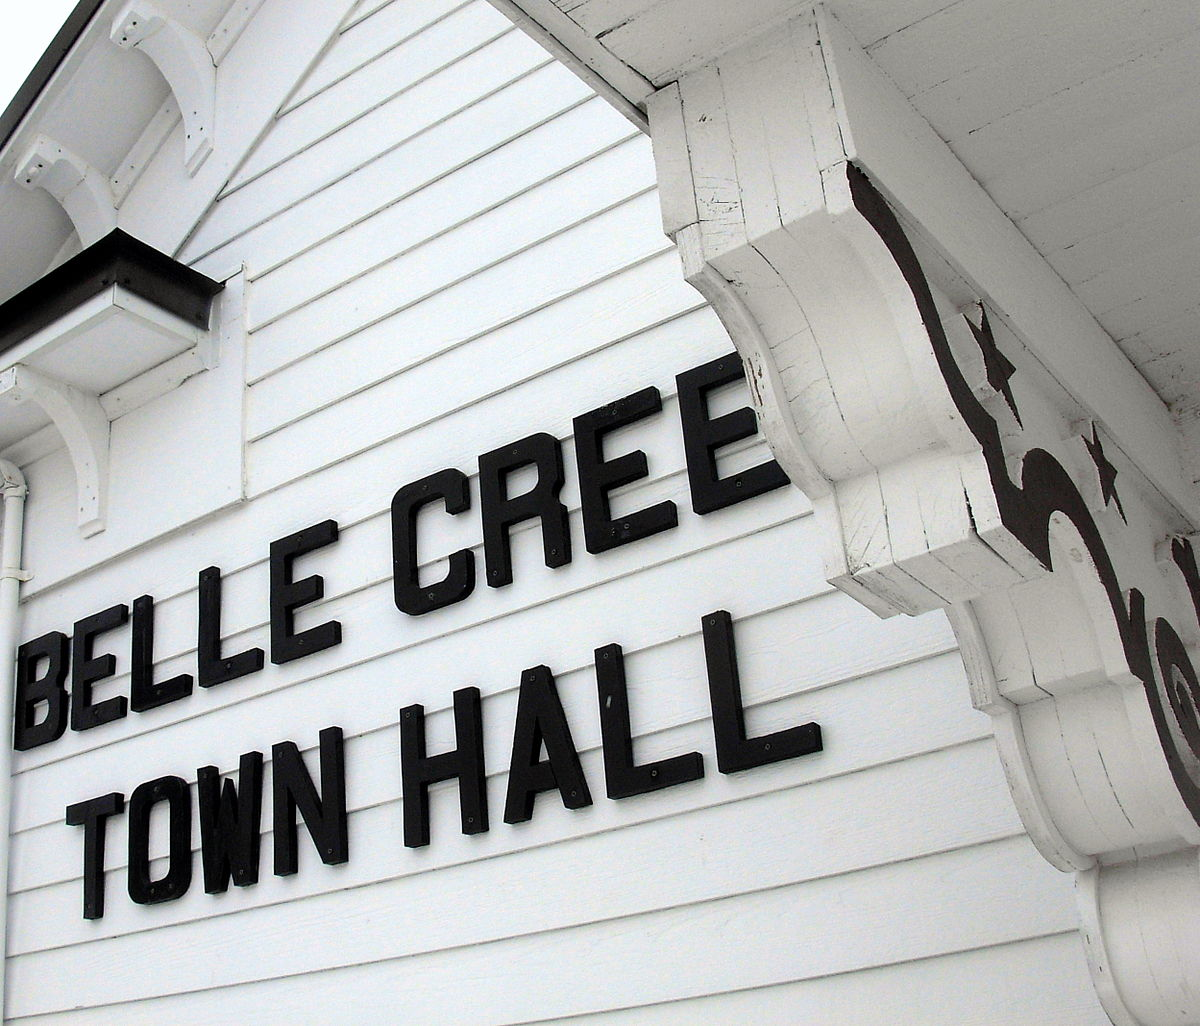 Belle creek township goodhue county minnesota wikipedia for Belle creek